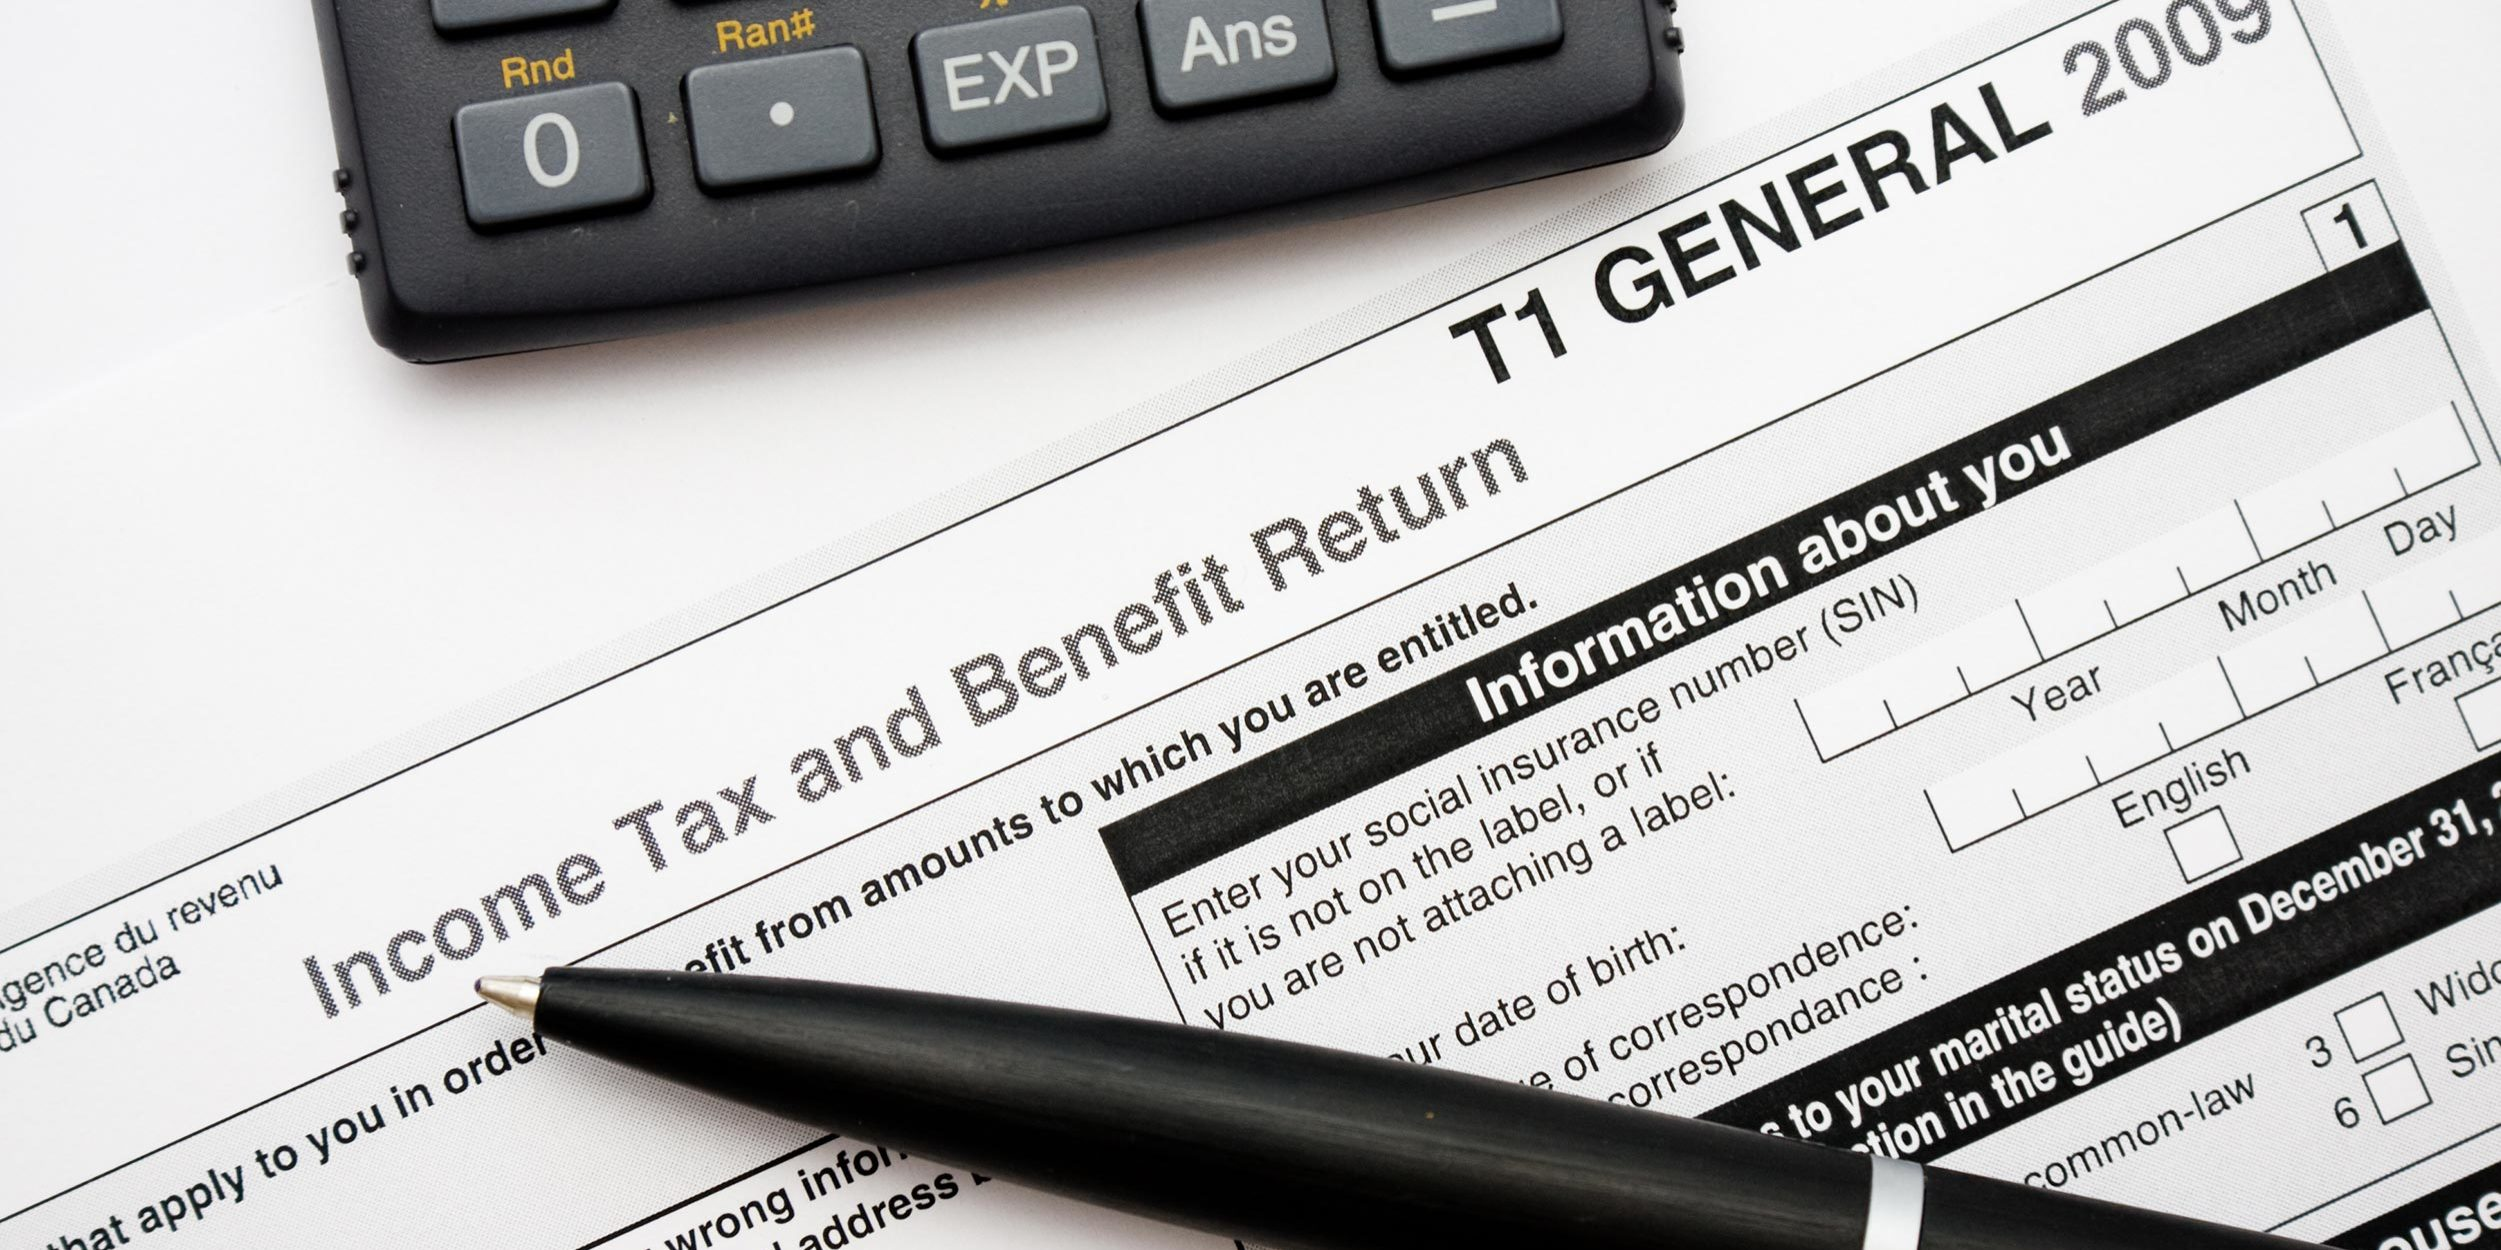 What to know before filing 2021 income tax in Canada